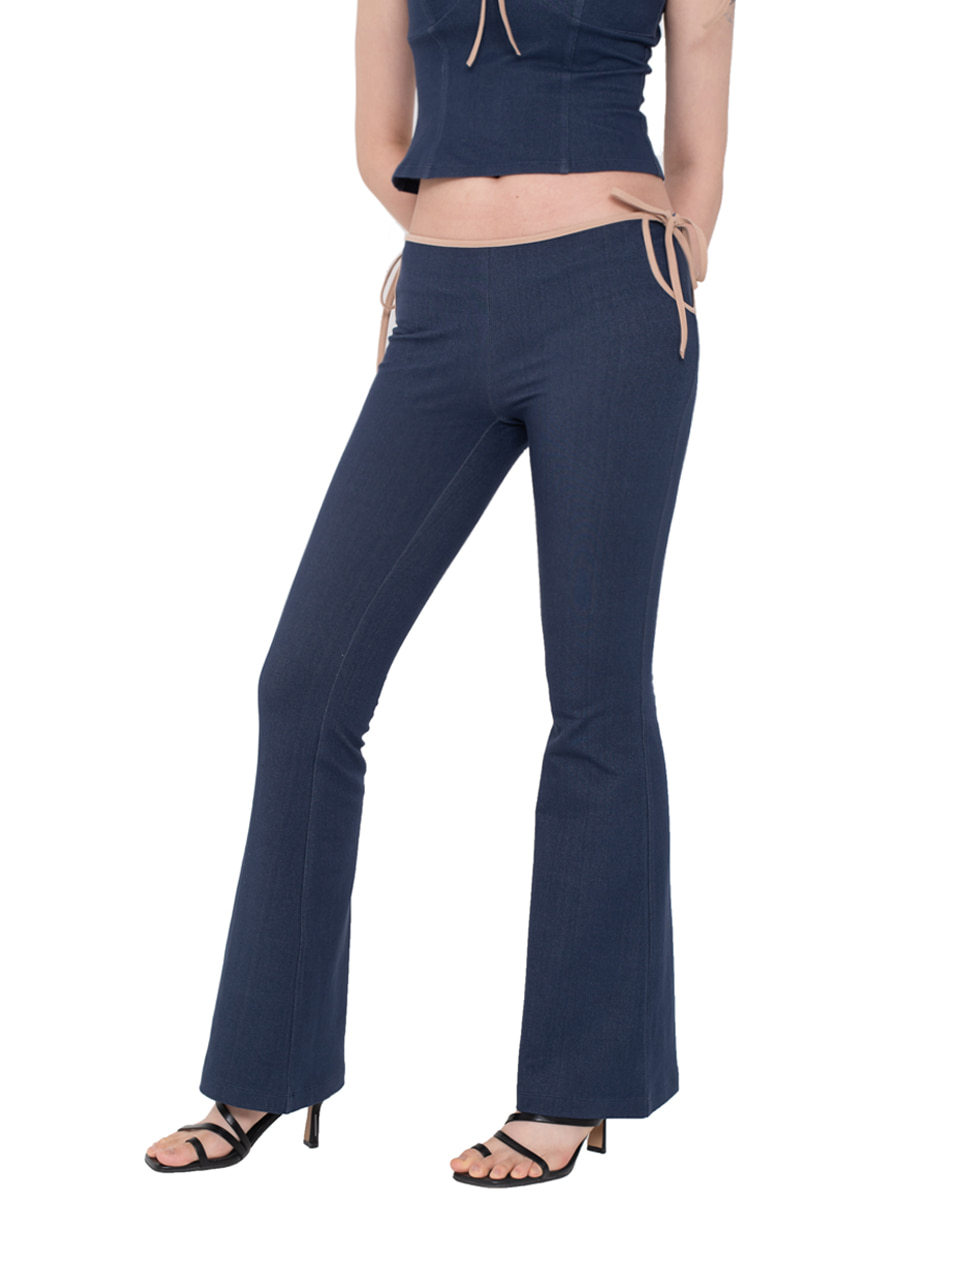 Saturn Pants NAVY